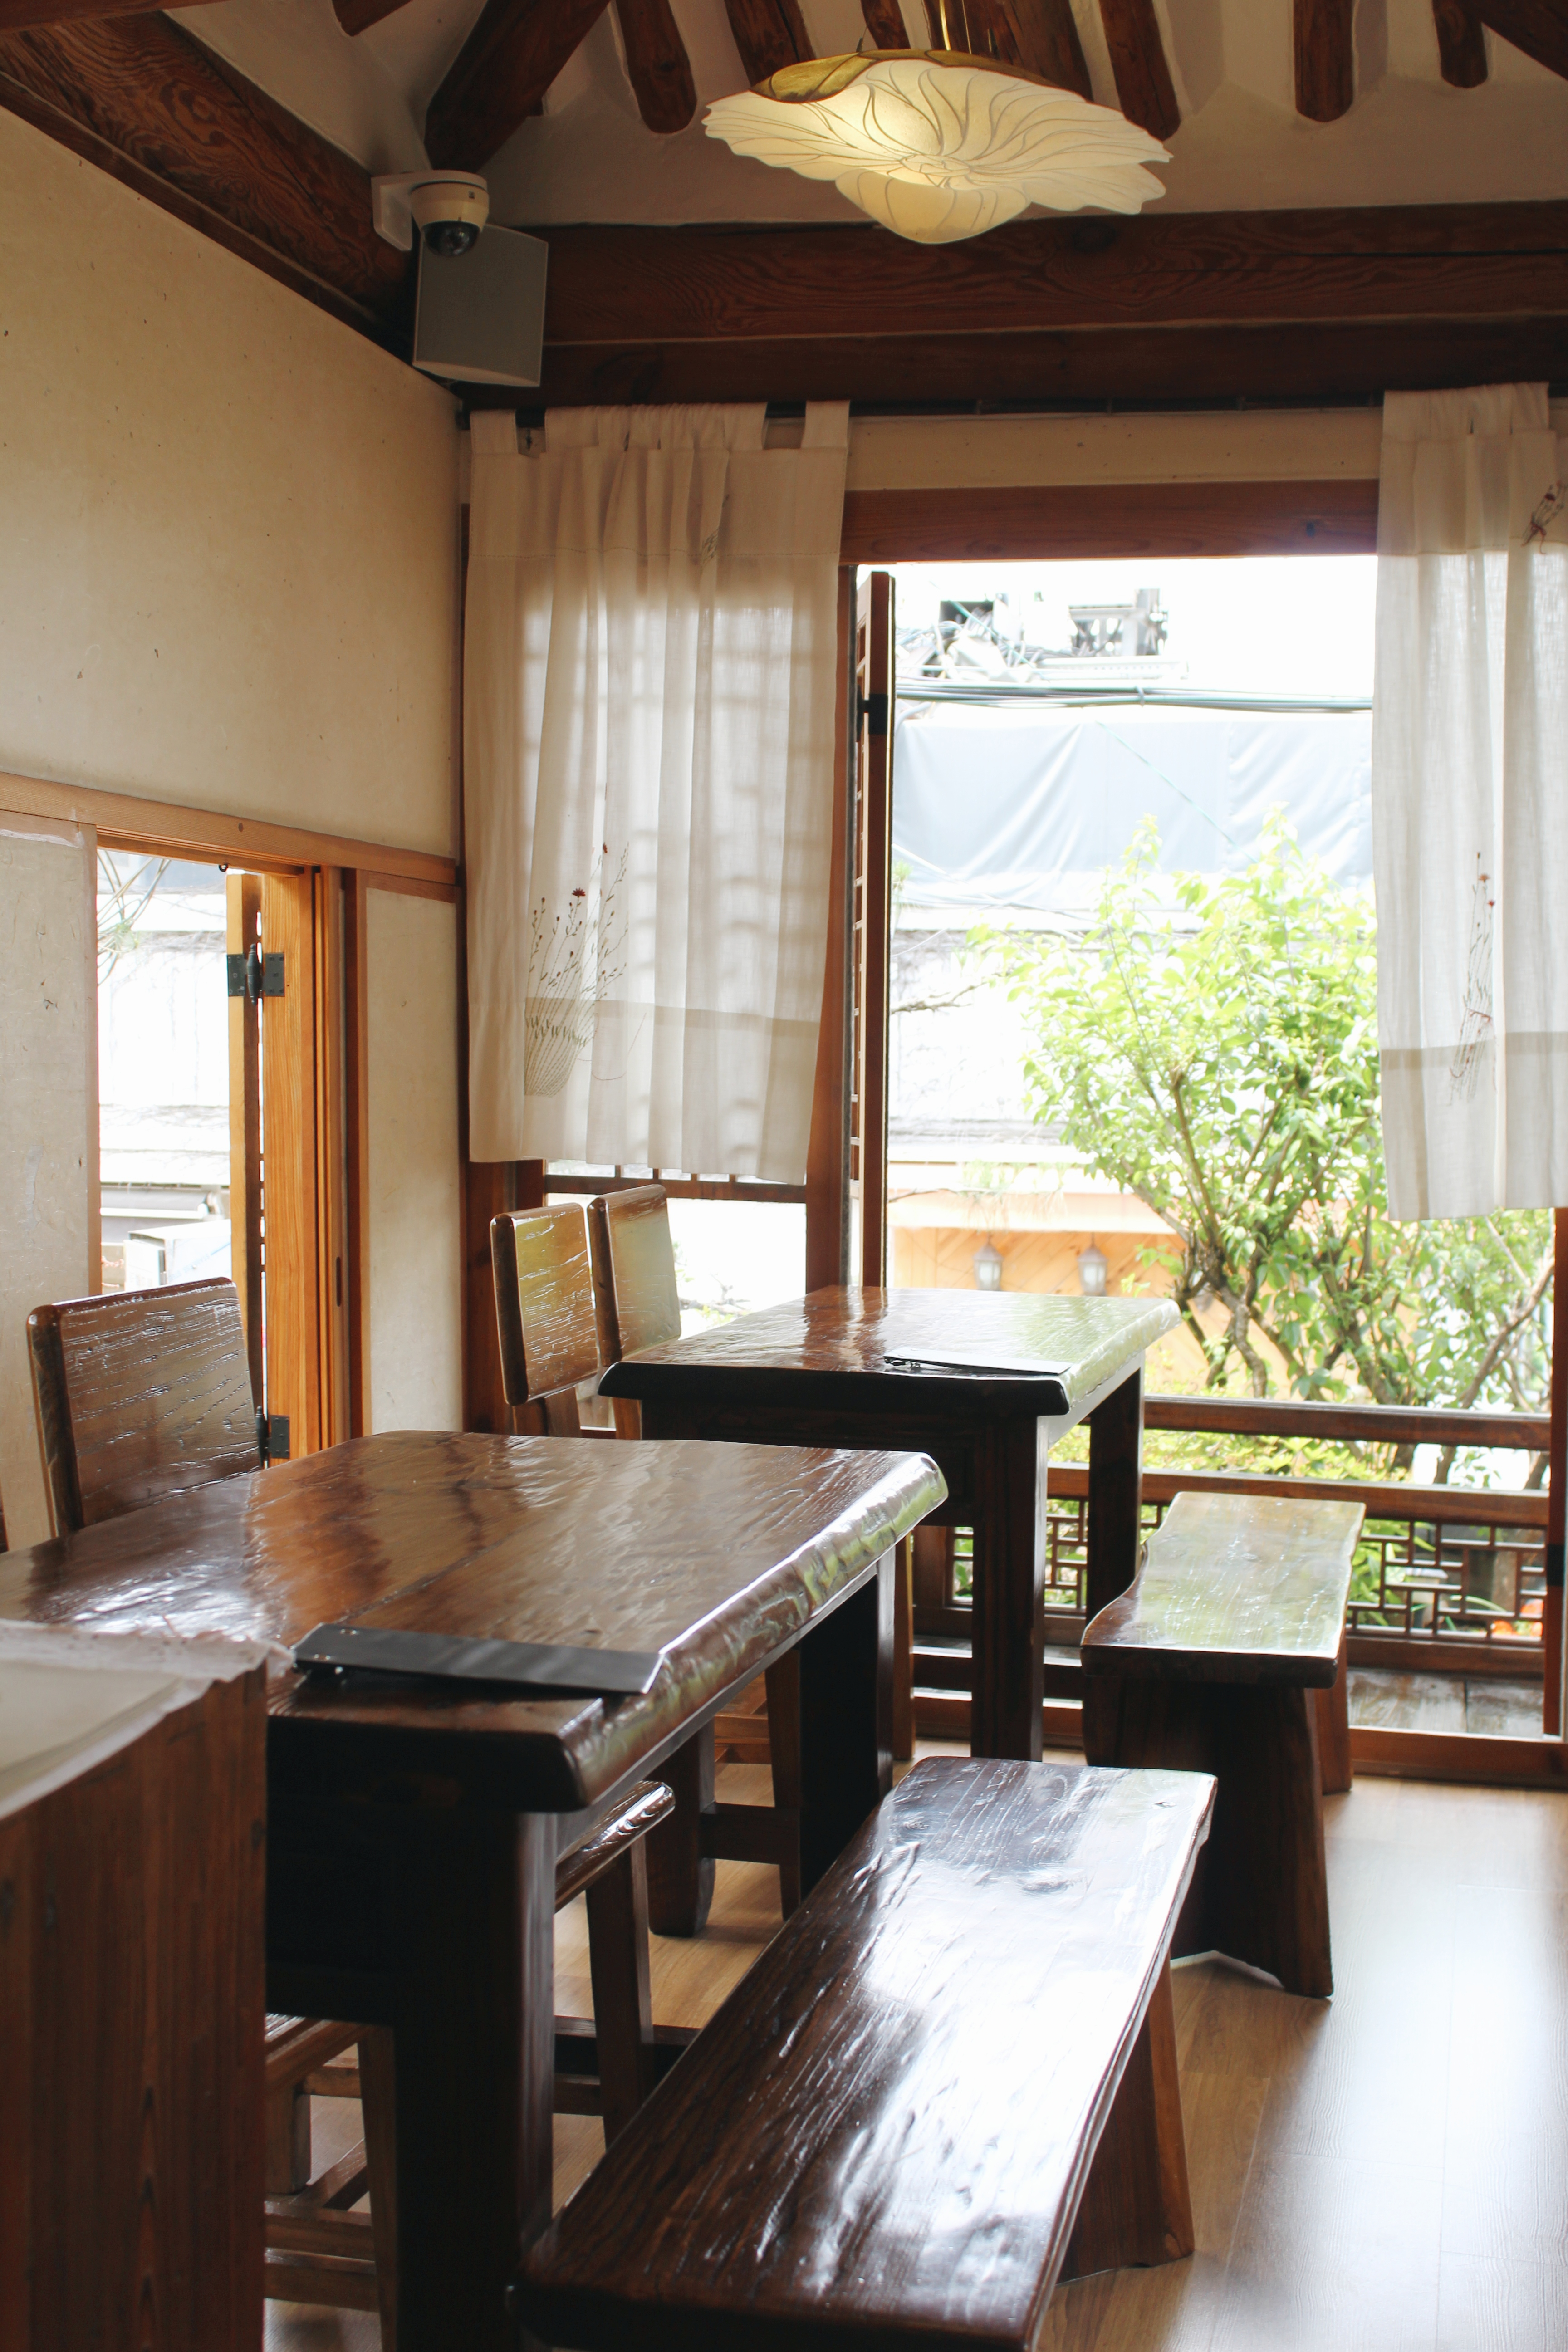 A photograph of some tables and a window with white curtains in Cha-teul.